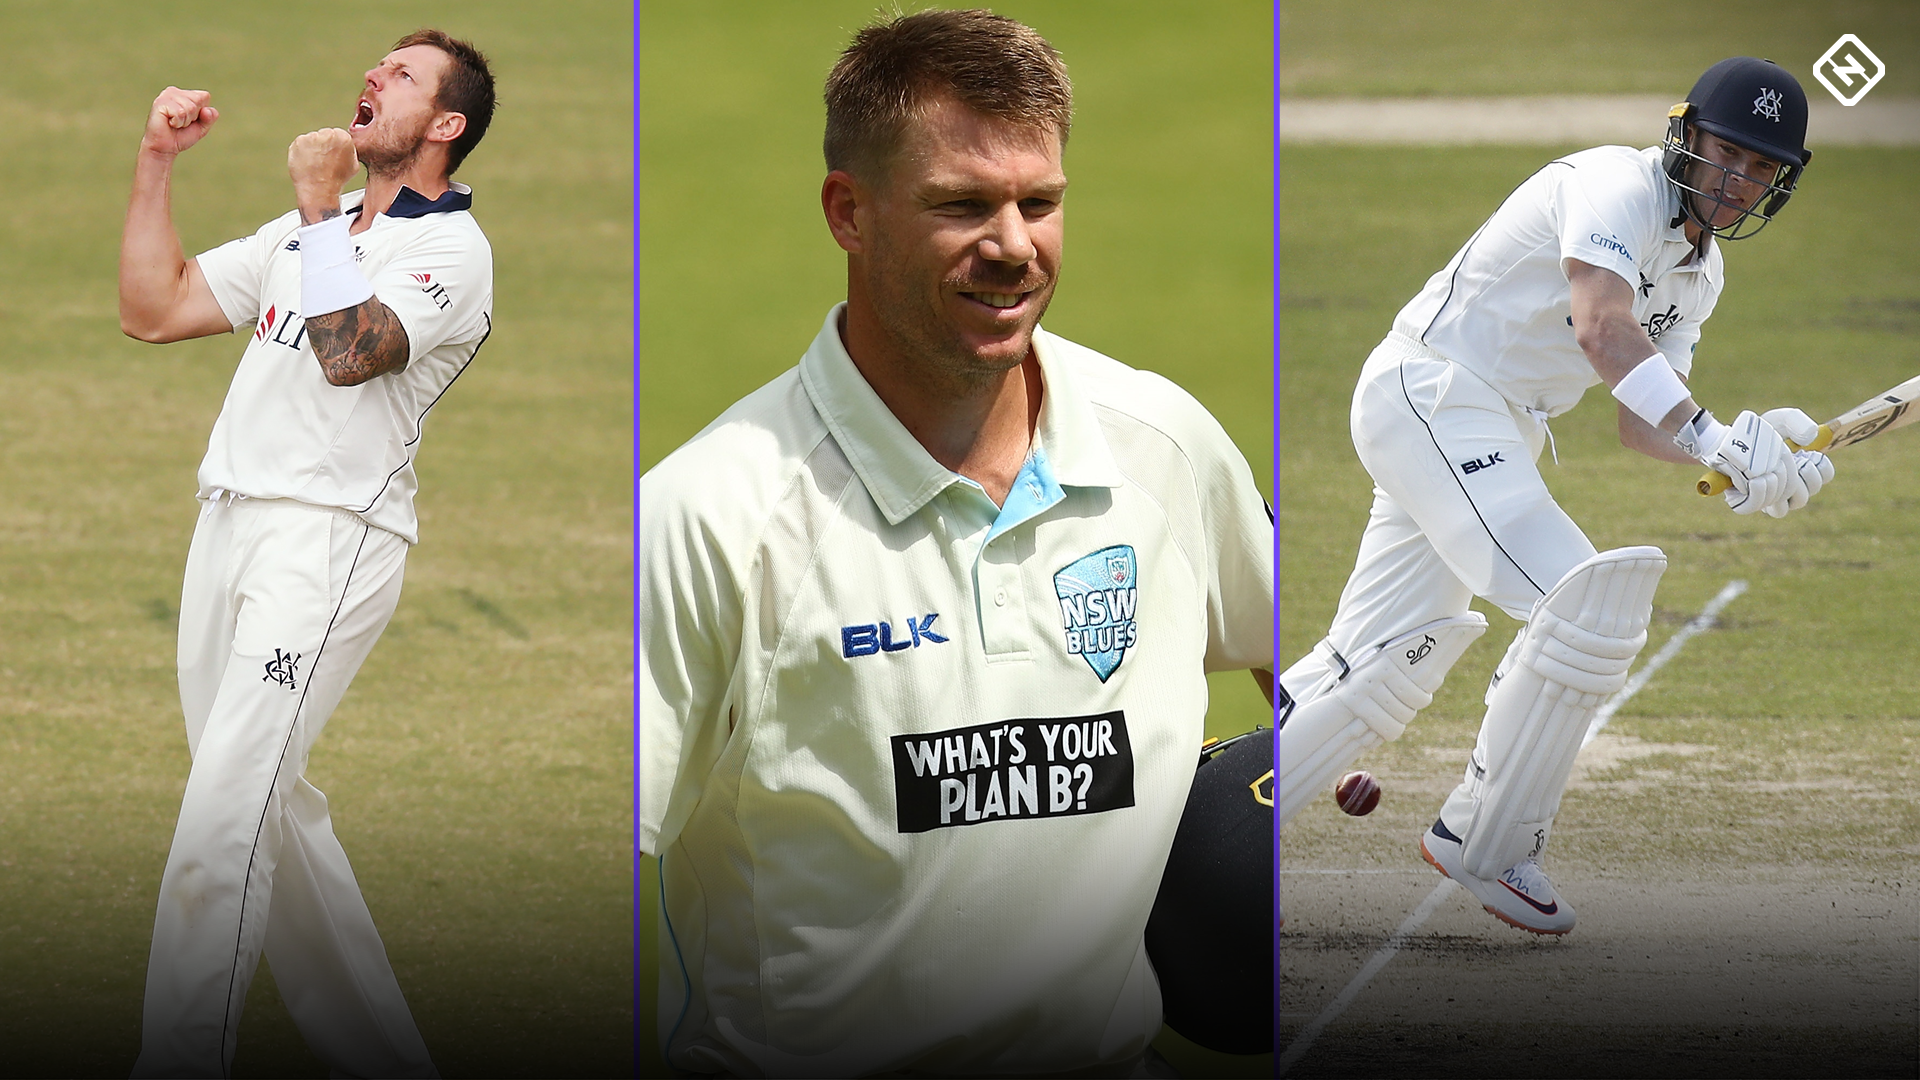 Sheffield Shield: 10 storylines to watch this season